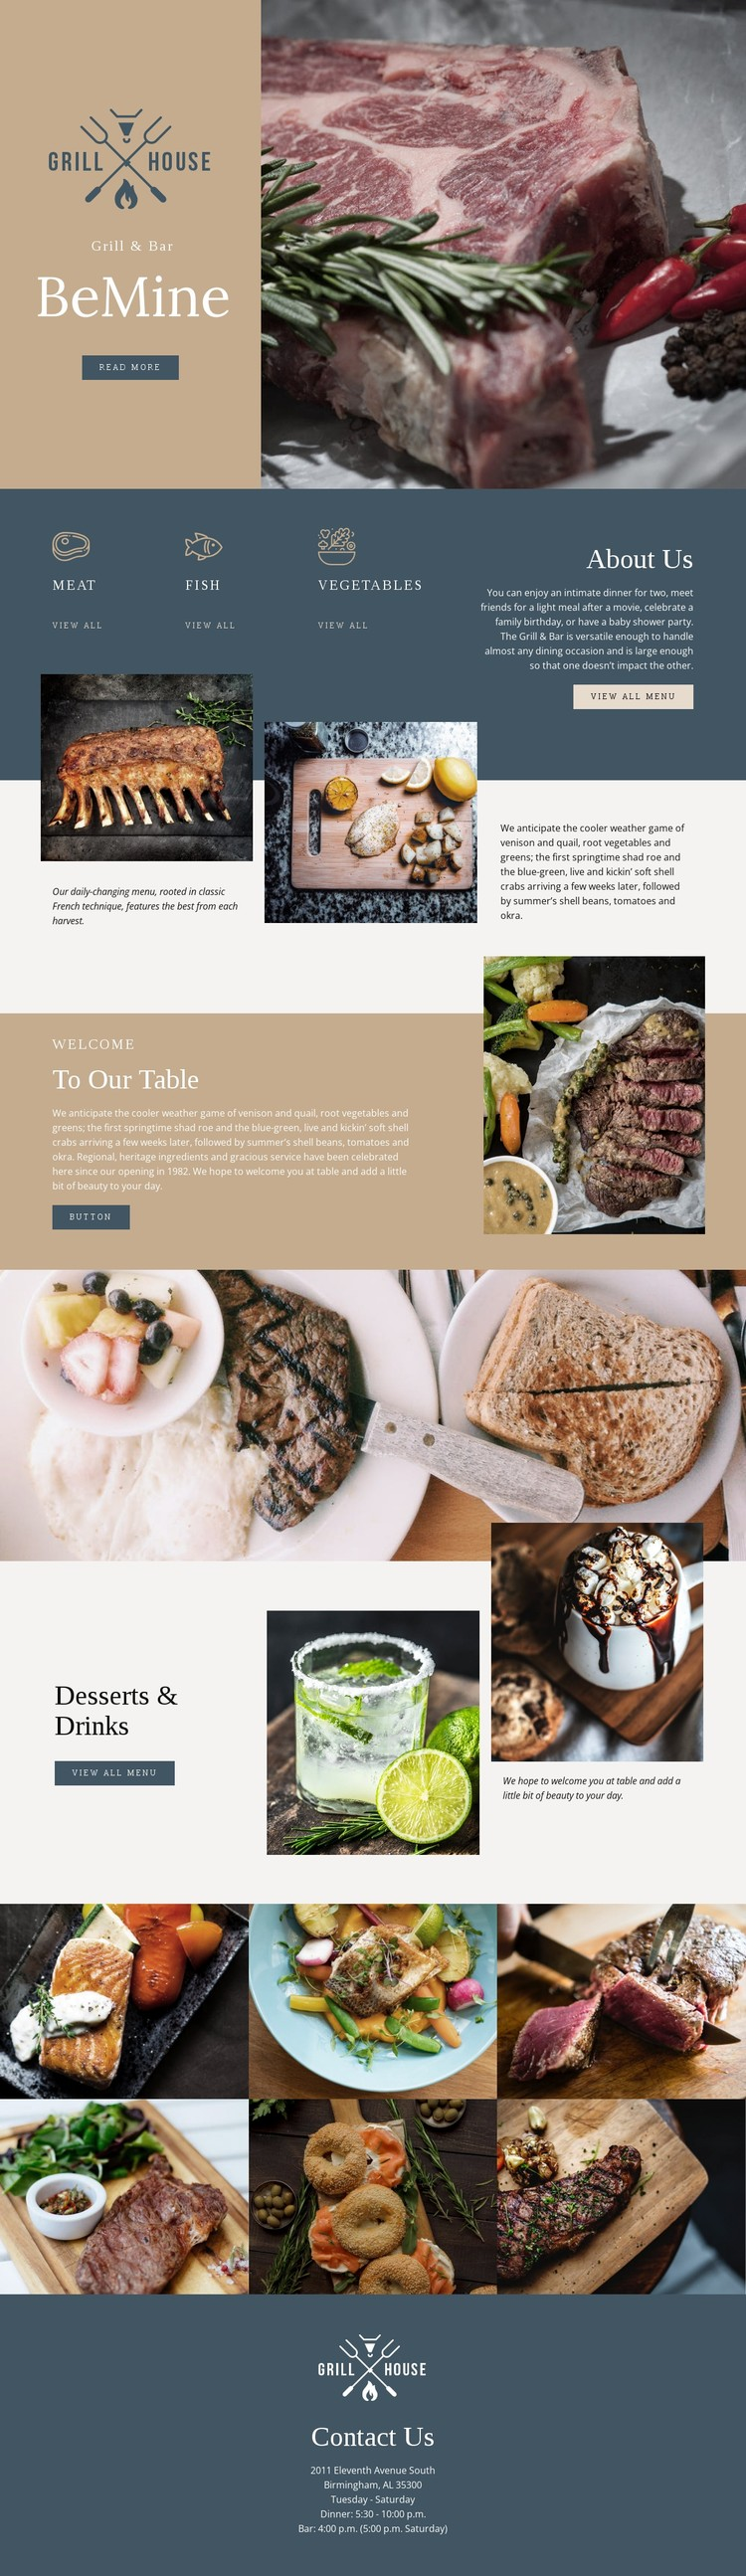 Finest grill house restaurant Static Site Generator